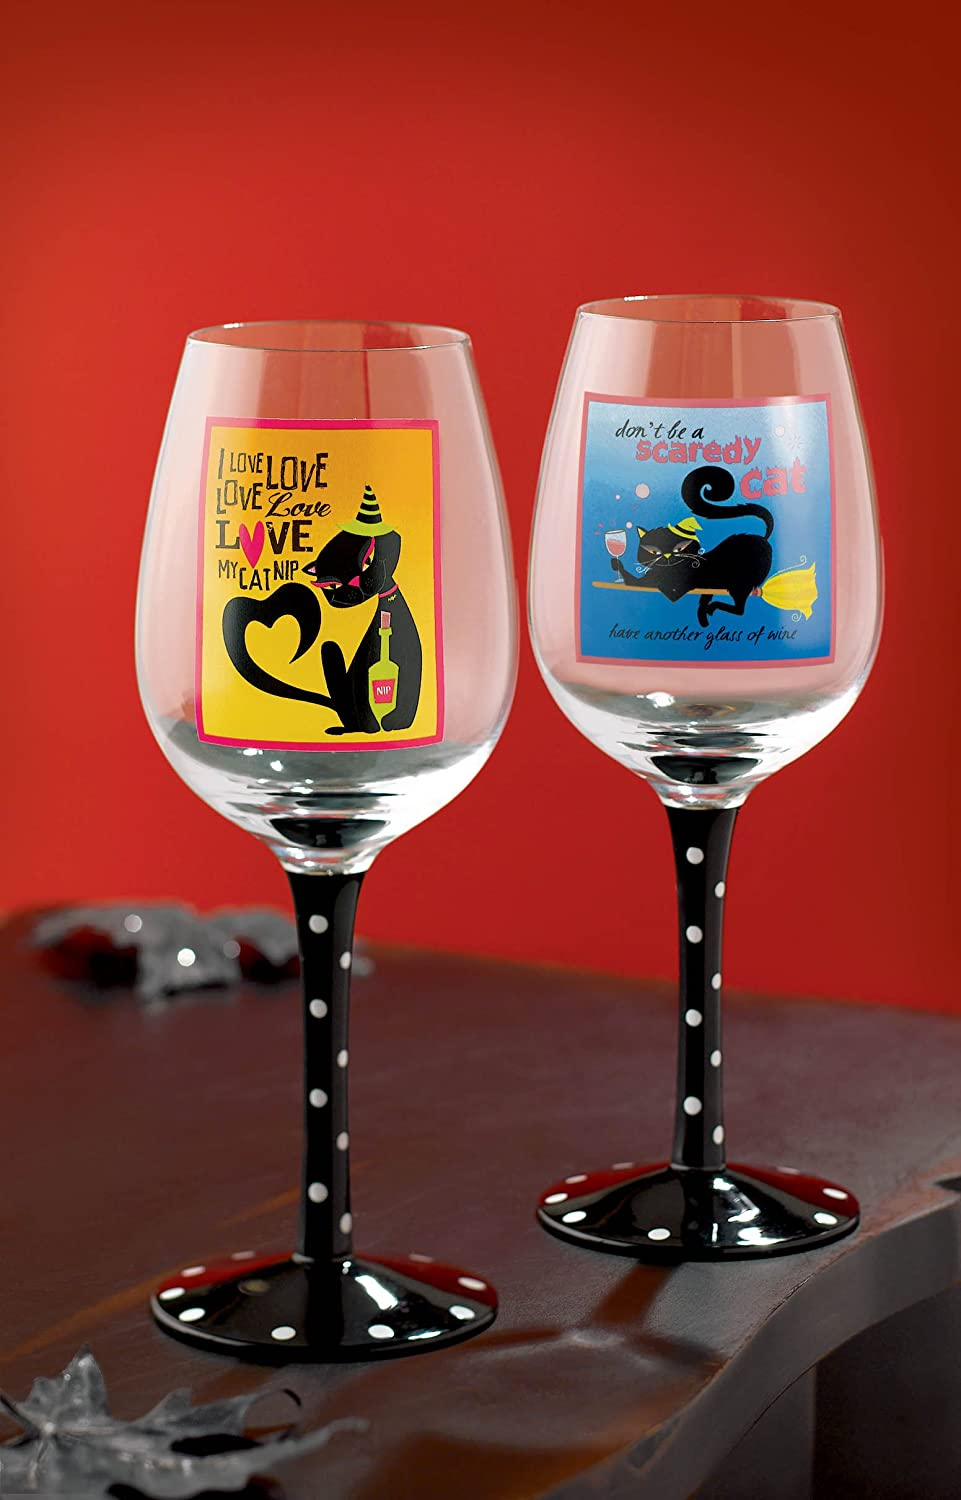 Grasslands Road Pretty Wicked Black Cat Wine Glasses, Two Styles, Set of 4